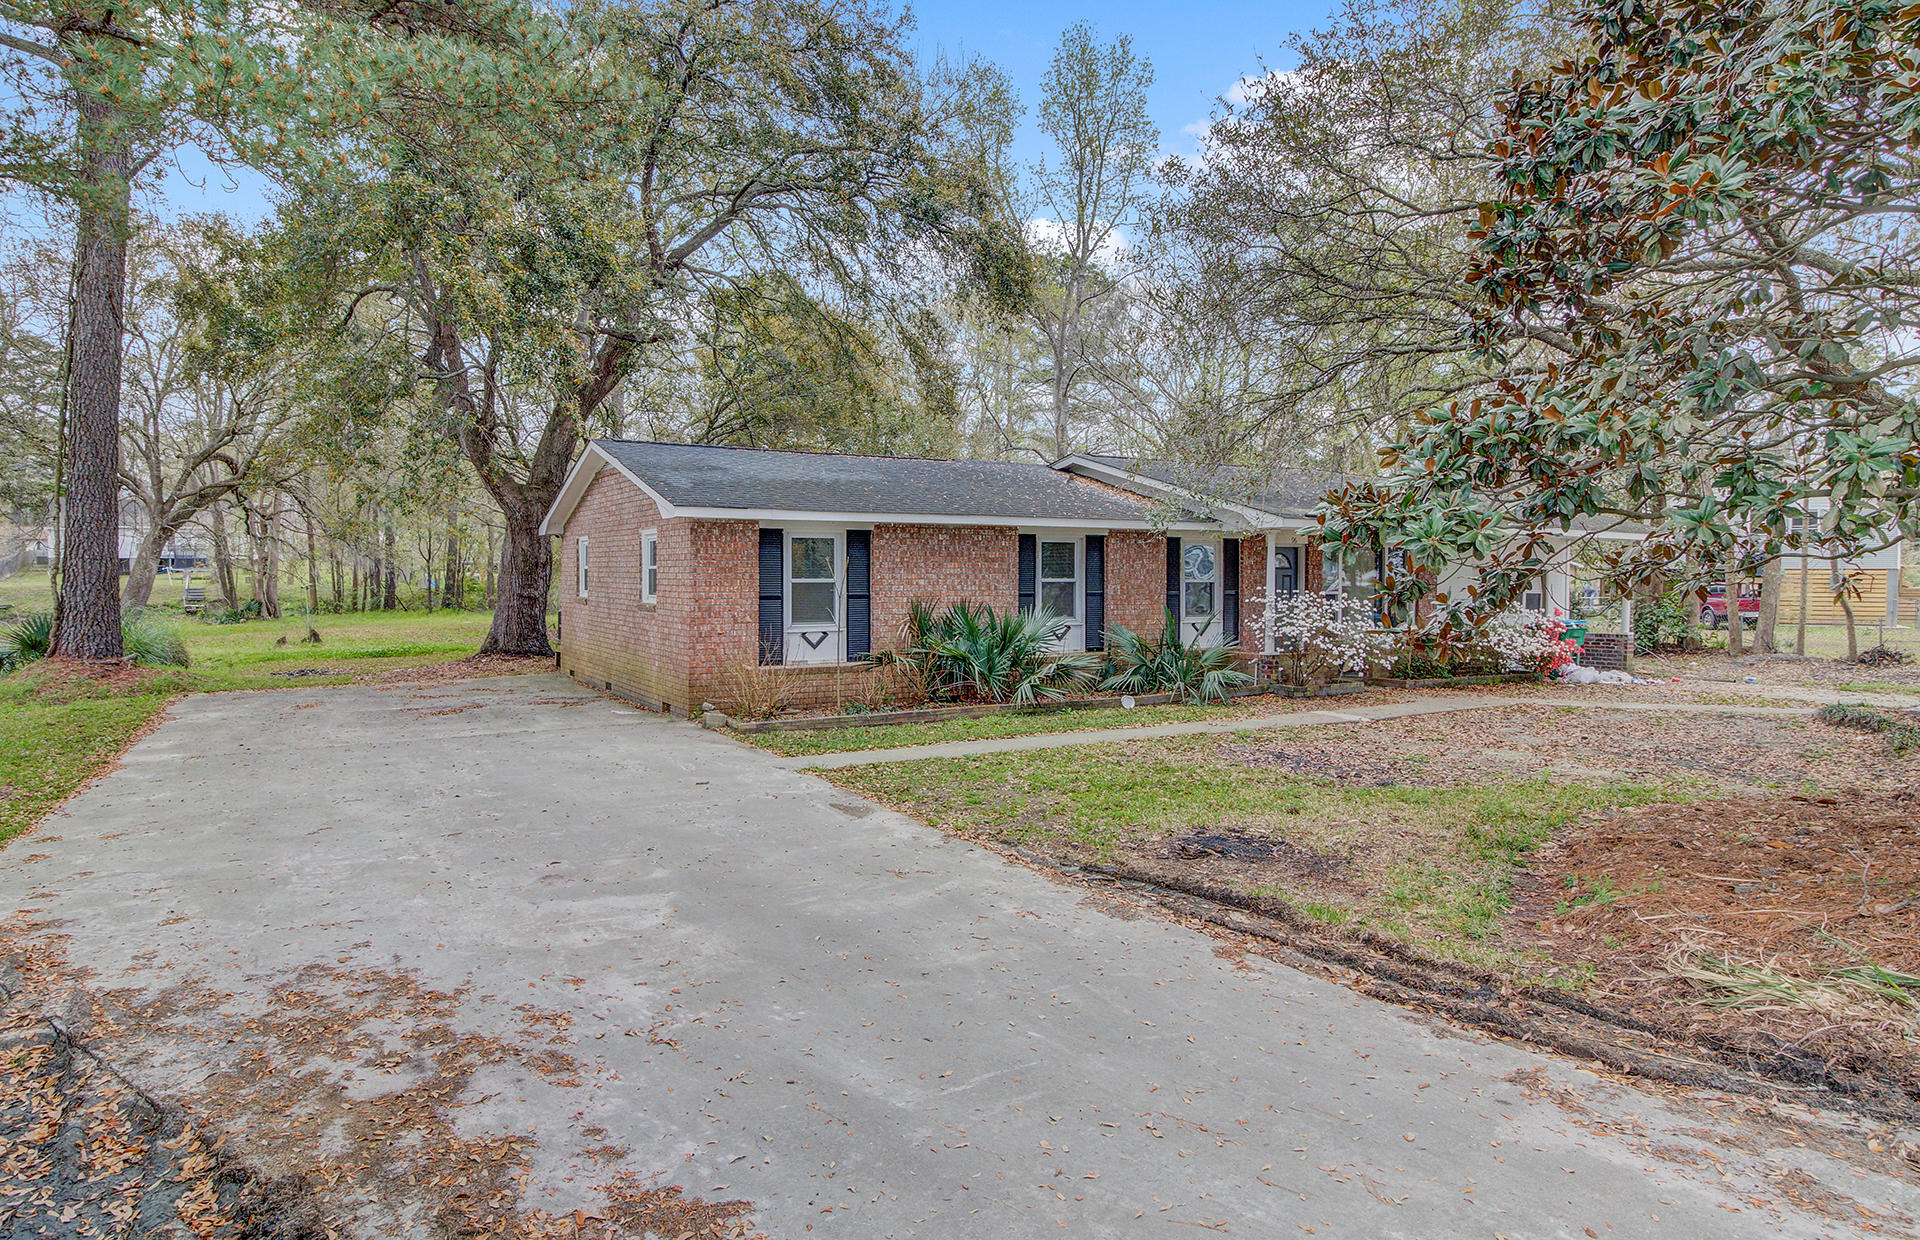 Tranquil Acres Homes For Sale - 96 Tranquil, Ladson, SC - 4